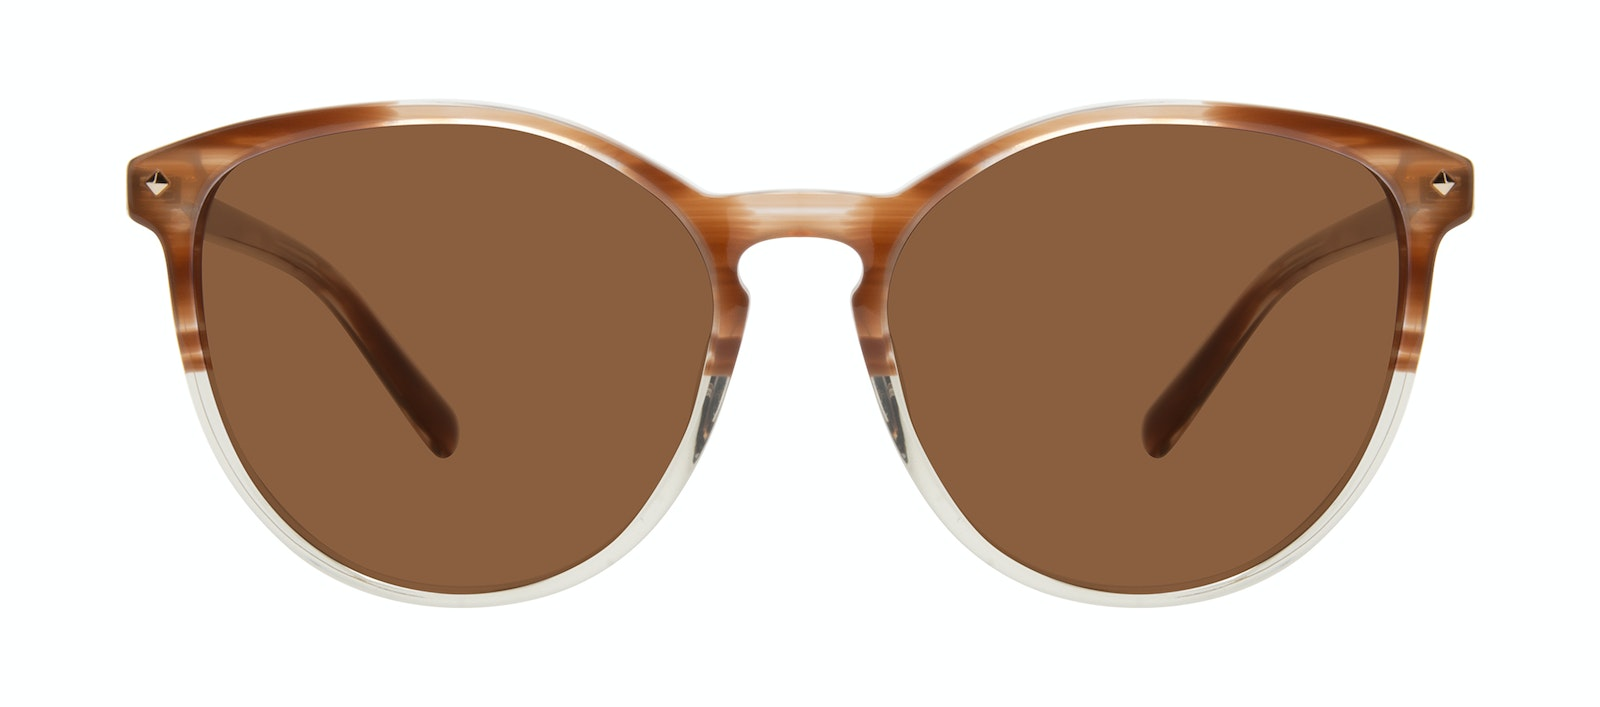 Affordable Fashion Glasses Round Sunglasses Women Viva Tan Front